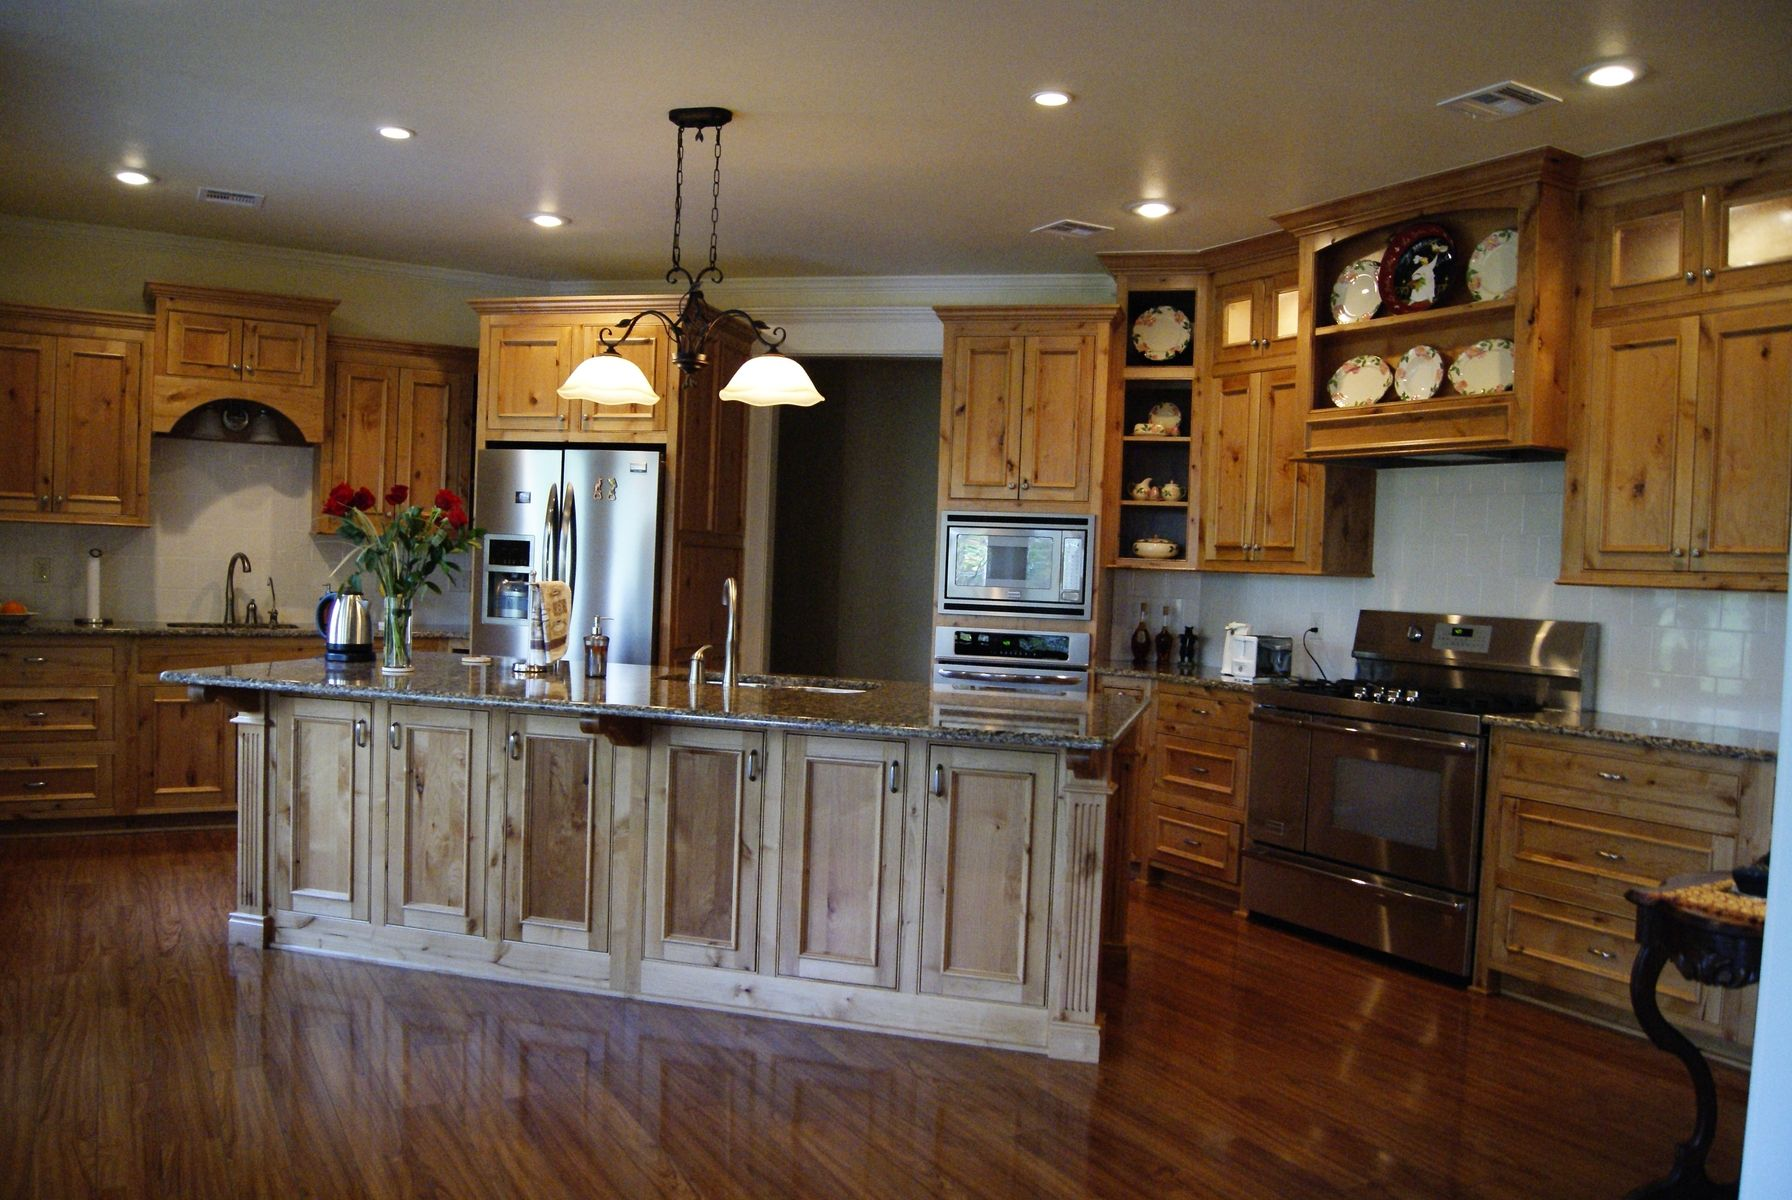 Custom Country Kitchen Hand Crafted Luxury American Country Kitchennone2  Custommade